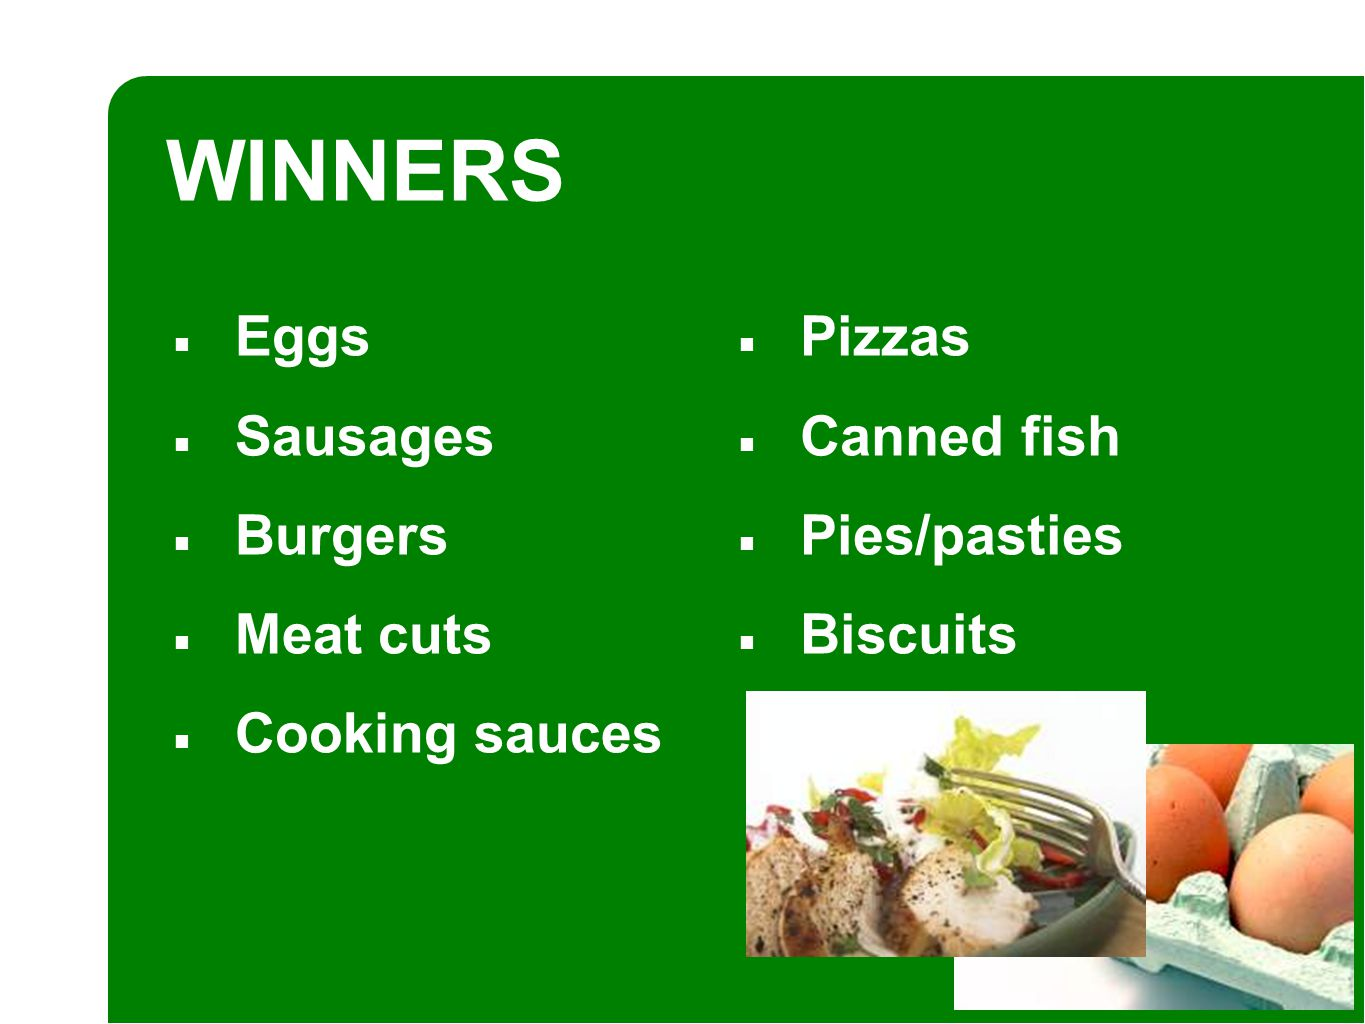 ■ Eggs ■ Sausages ■ Burgers ■ Meat cuts ■ Cooking sauces WINNERS ■ Pizzas ■ Canned fish ■ Pies/pasties ■ Biscuits